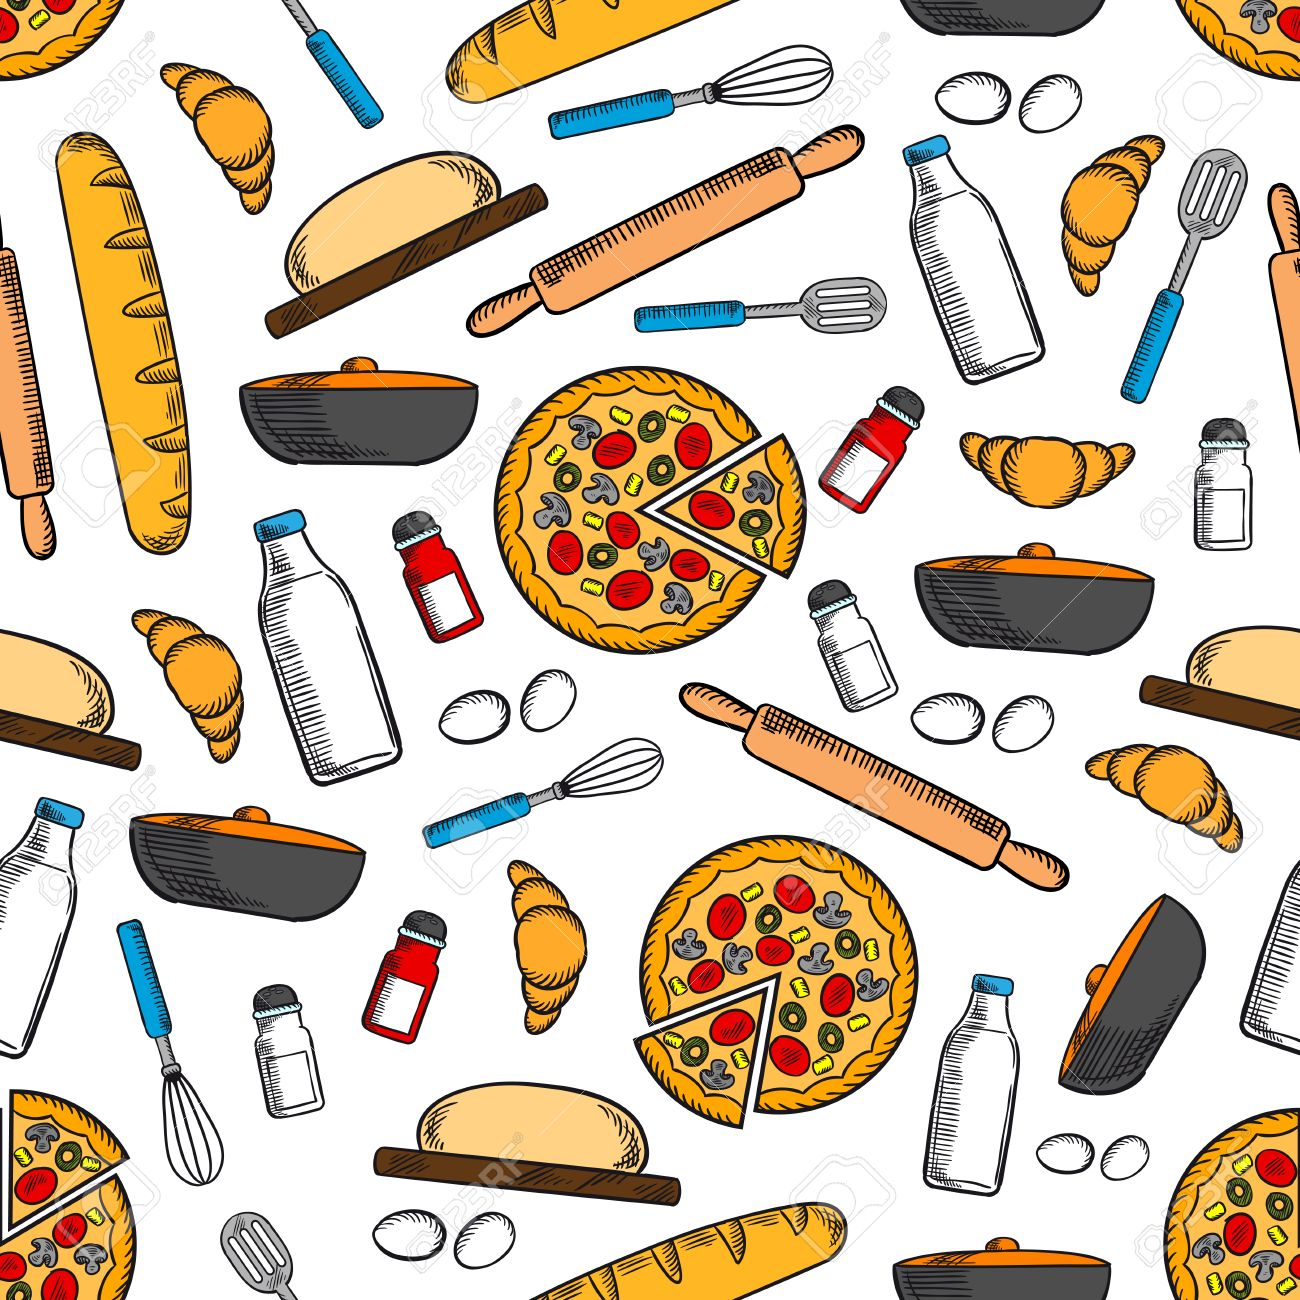 Cooking And Kitchen Utensils Seamless Background Wallpaper With